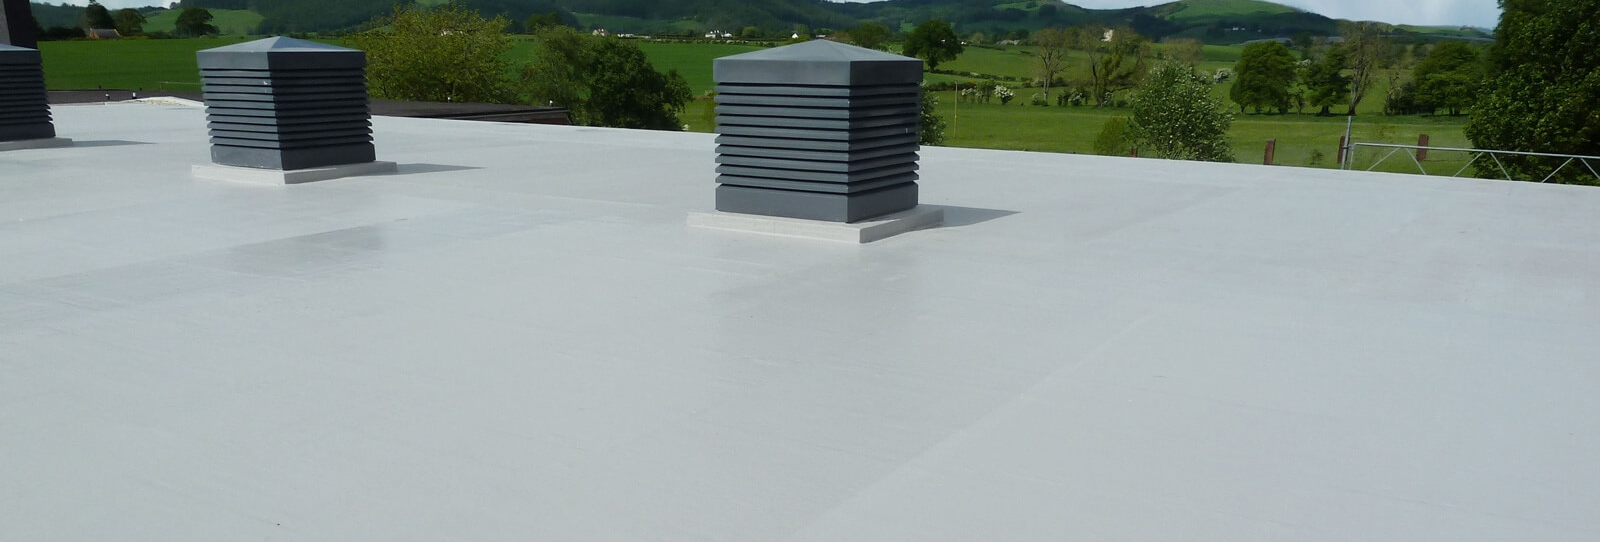 Polyroof™ Technology